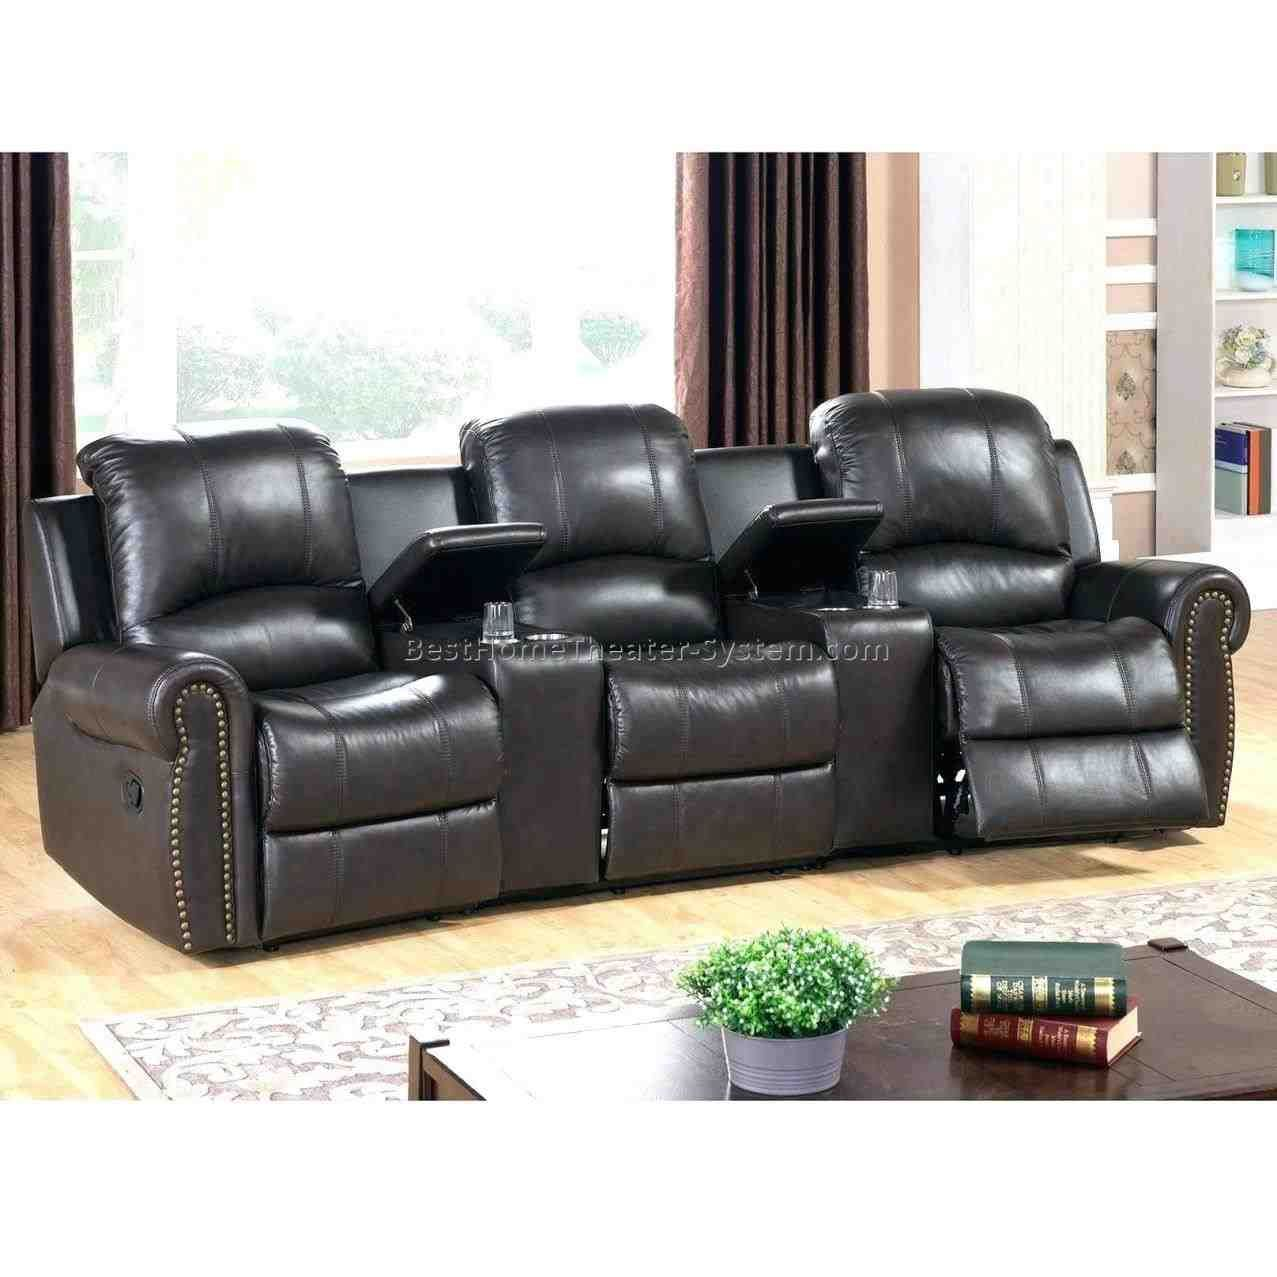 Cheap Recliners Online Buy Living Rooms Recliners Online Living